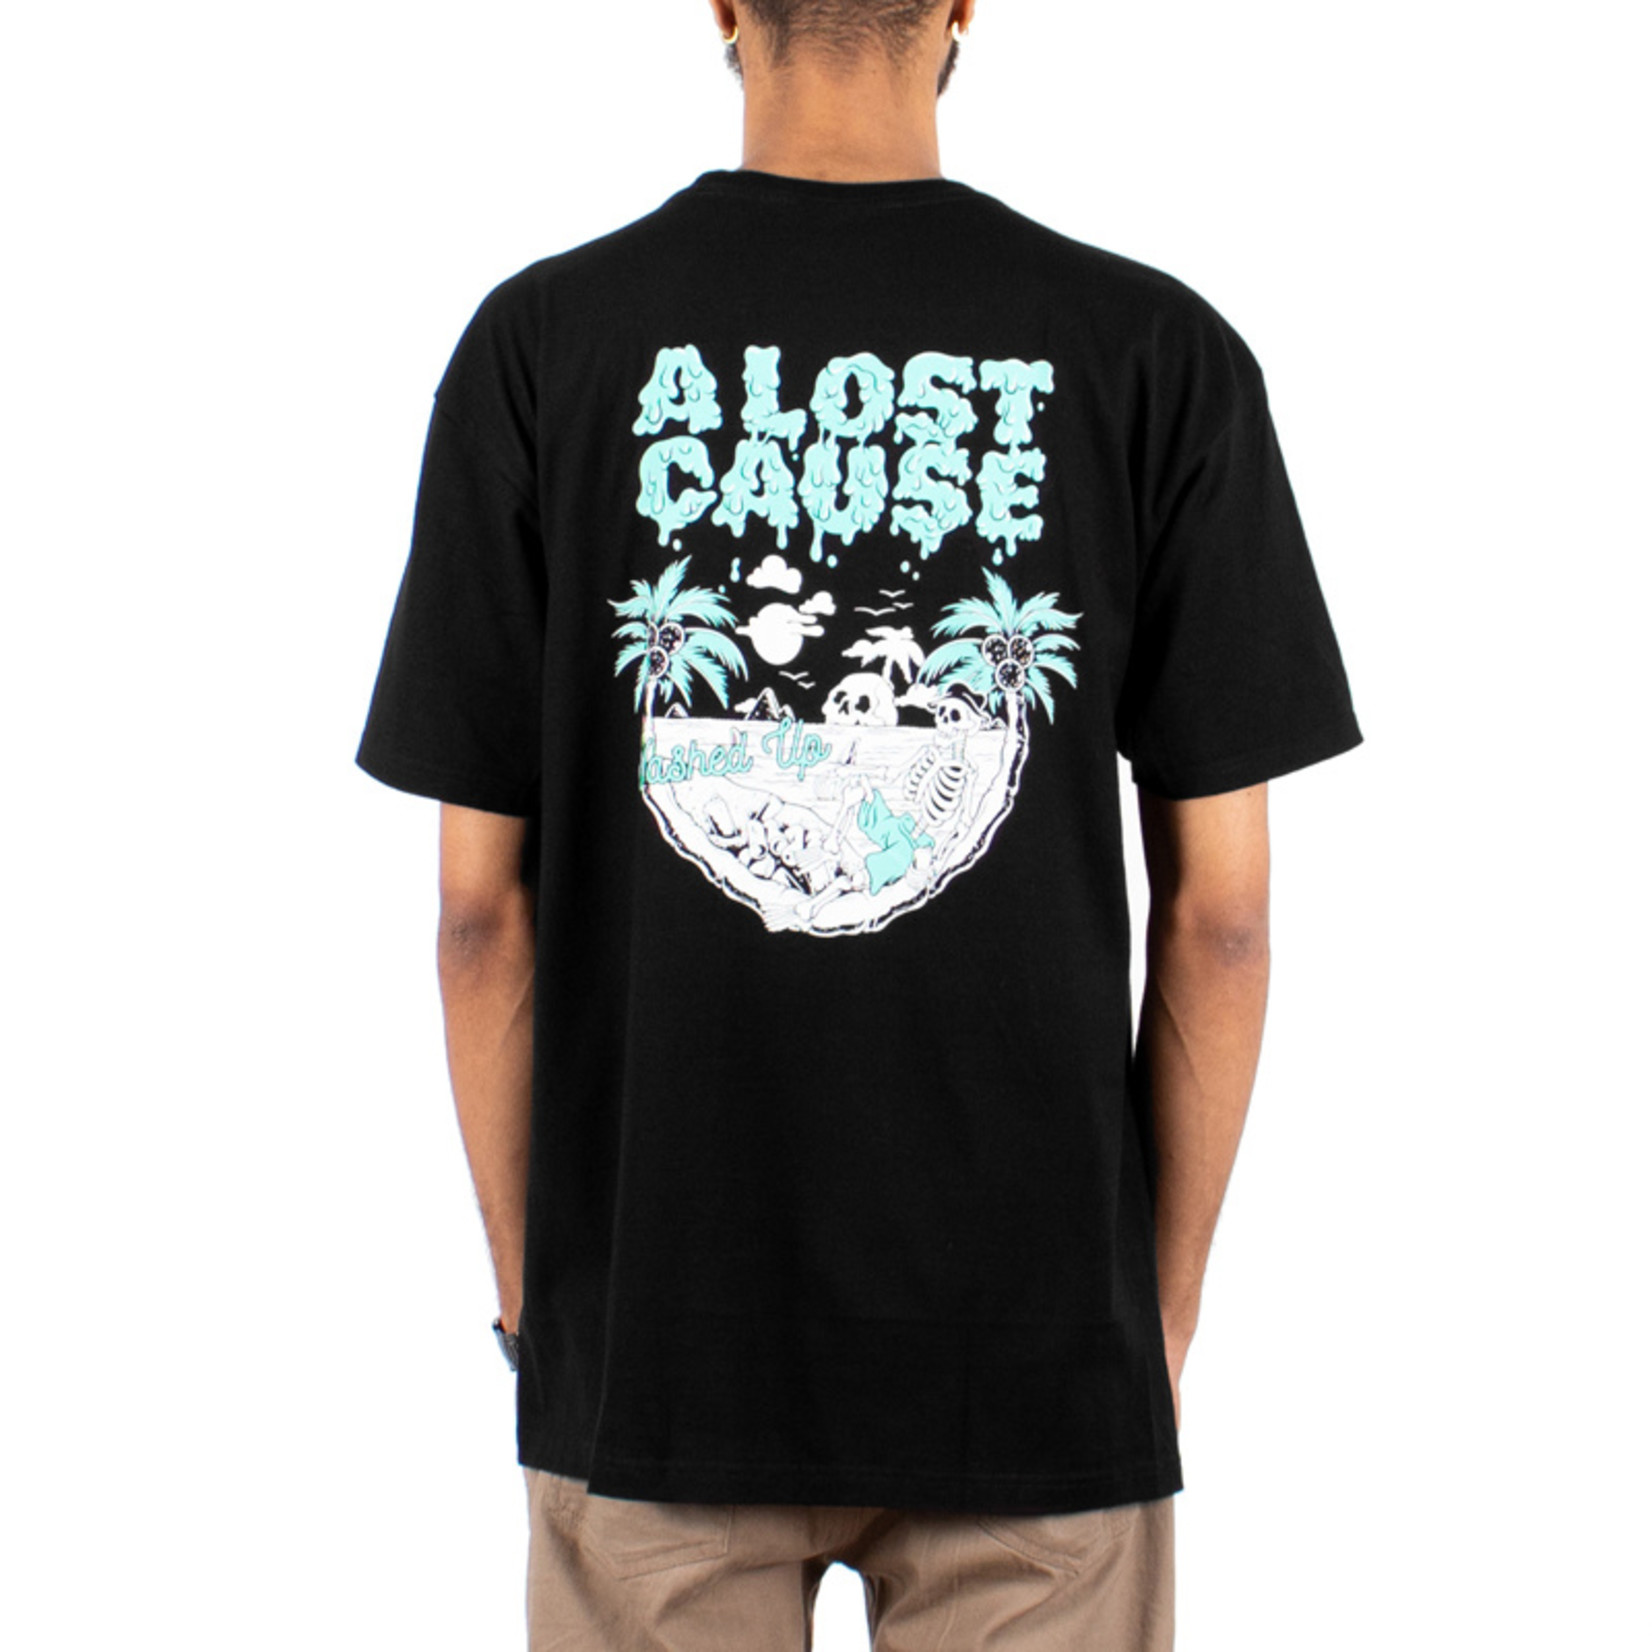 A Lost Cause A Lost Cause : Washed Tee